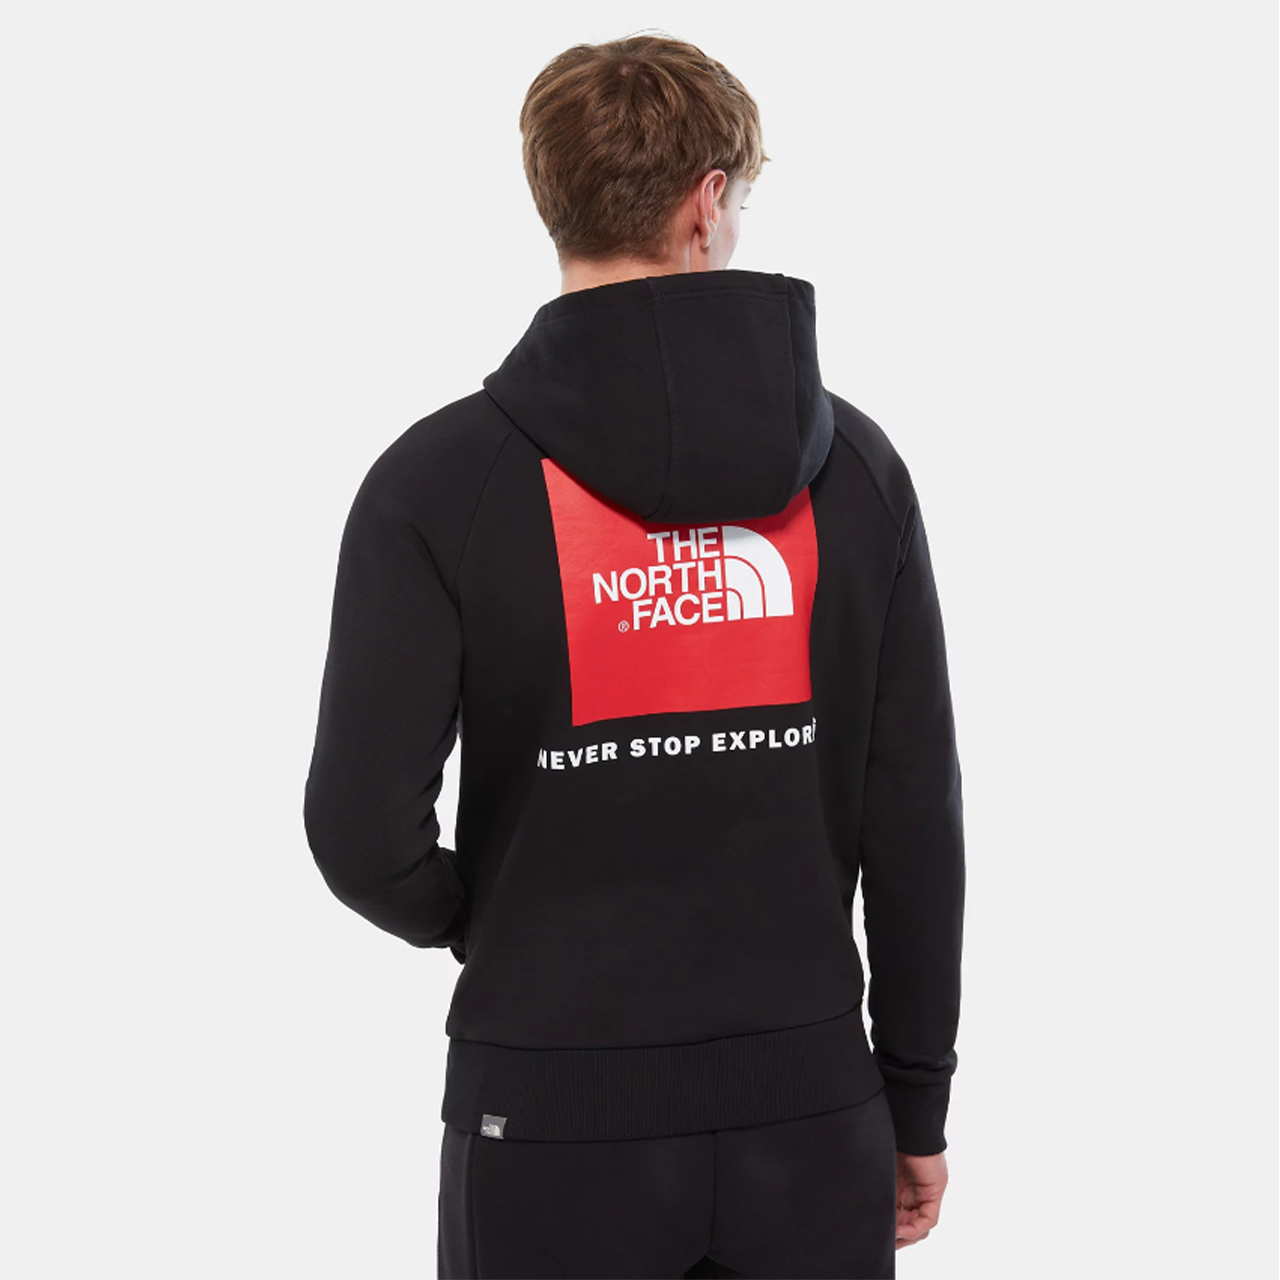 THE NORTH FACE Černá mikina Raglan Red Box HD – S